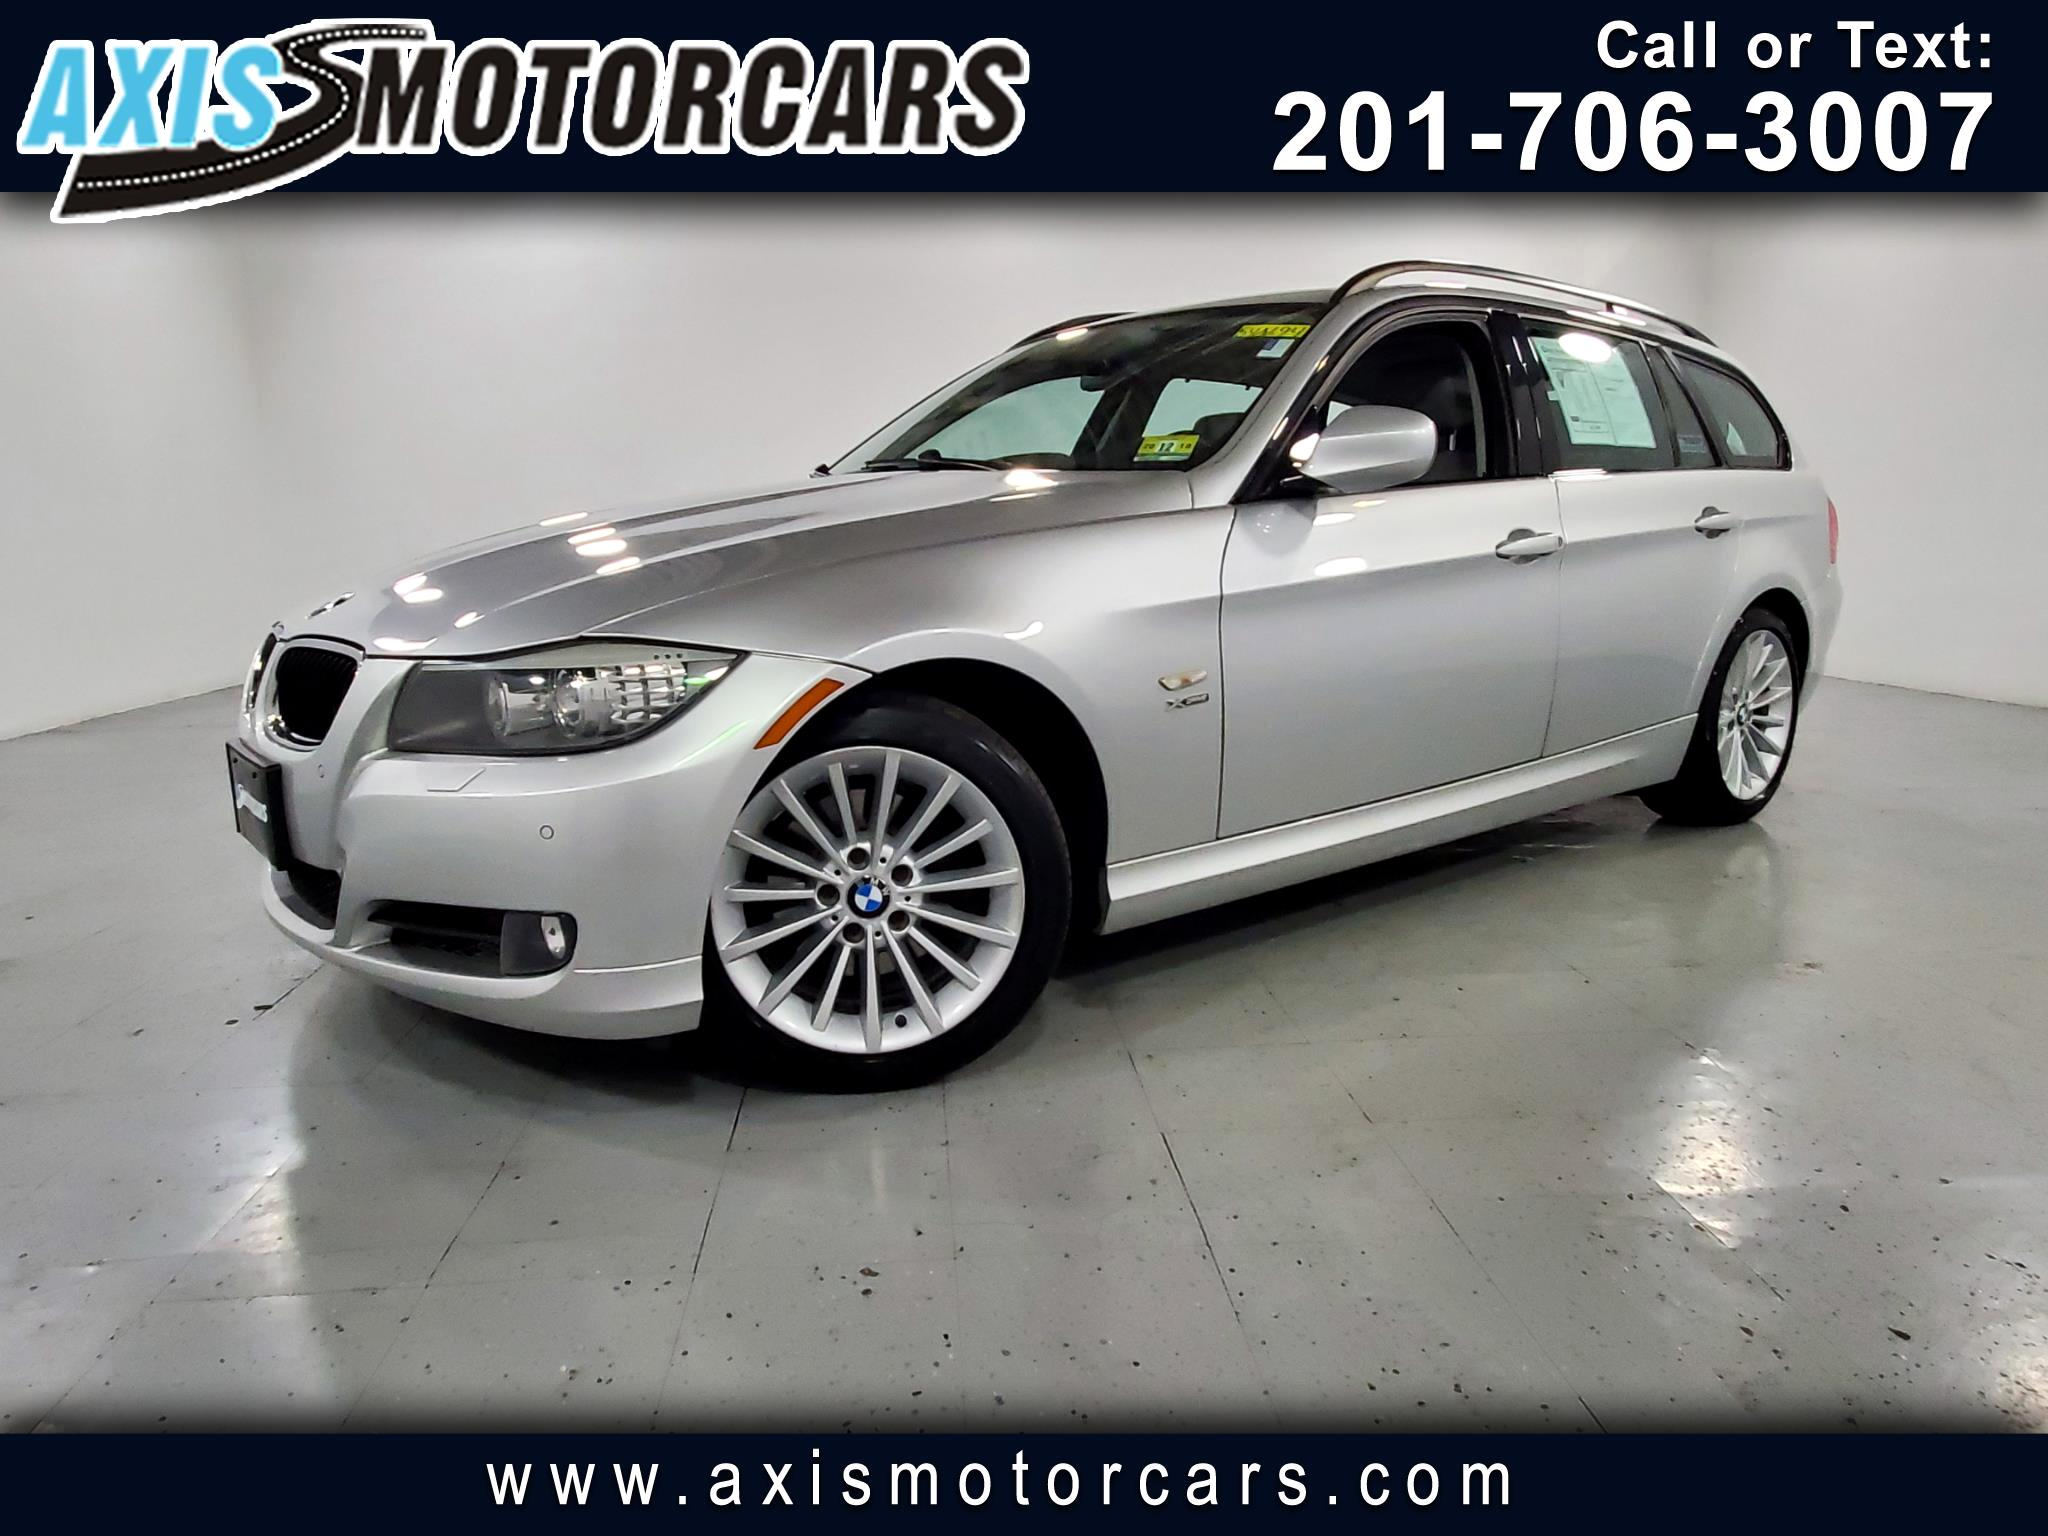 2009 BMW 328i Wagon w/Panoramic Roof Navigation Leather